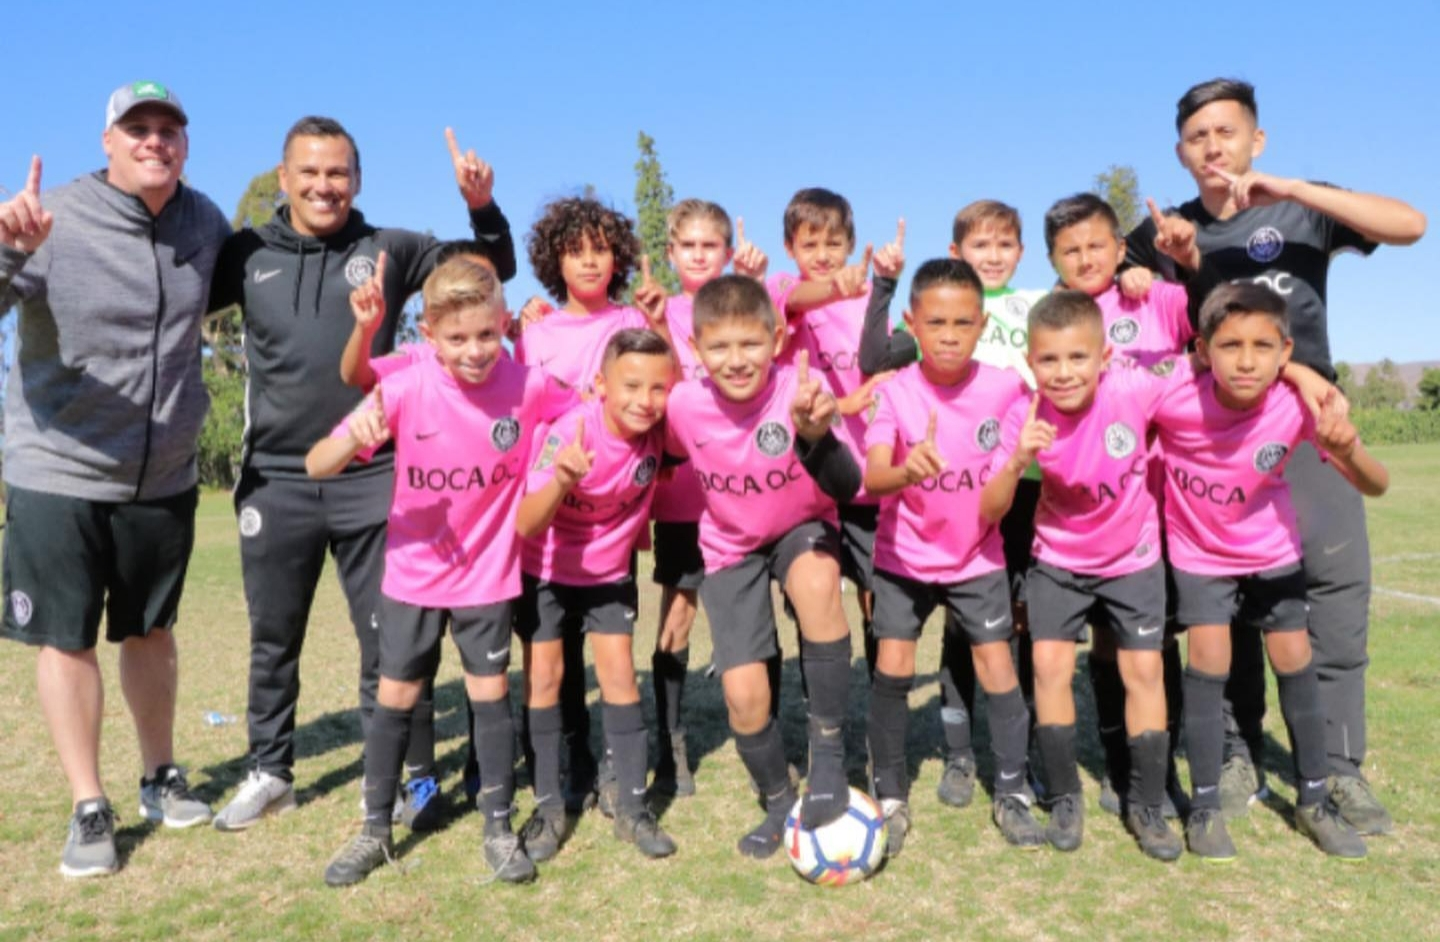 THE BOCA OC 09's ARE THE SILVER ELITE SOUTH CHAMPIONS!